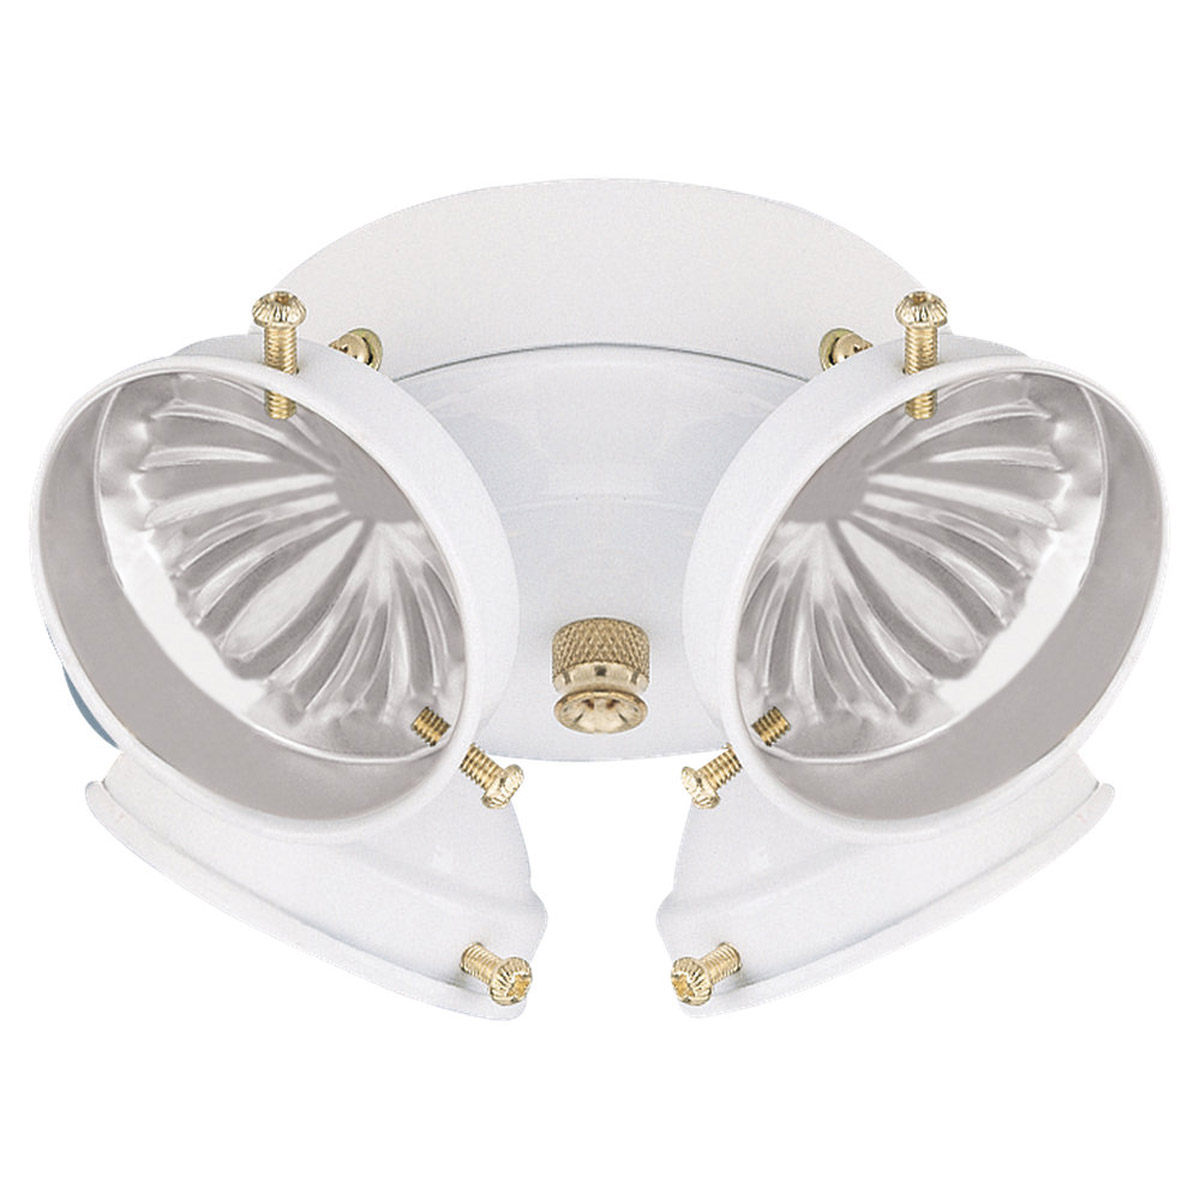 Sea Gull Lighting Signature 4 Light Fan Light Kit in White 16151B-15